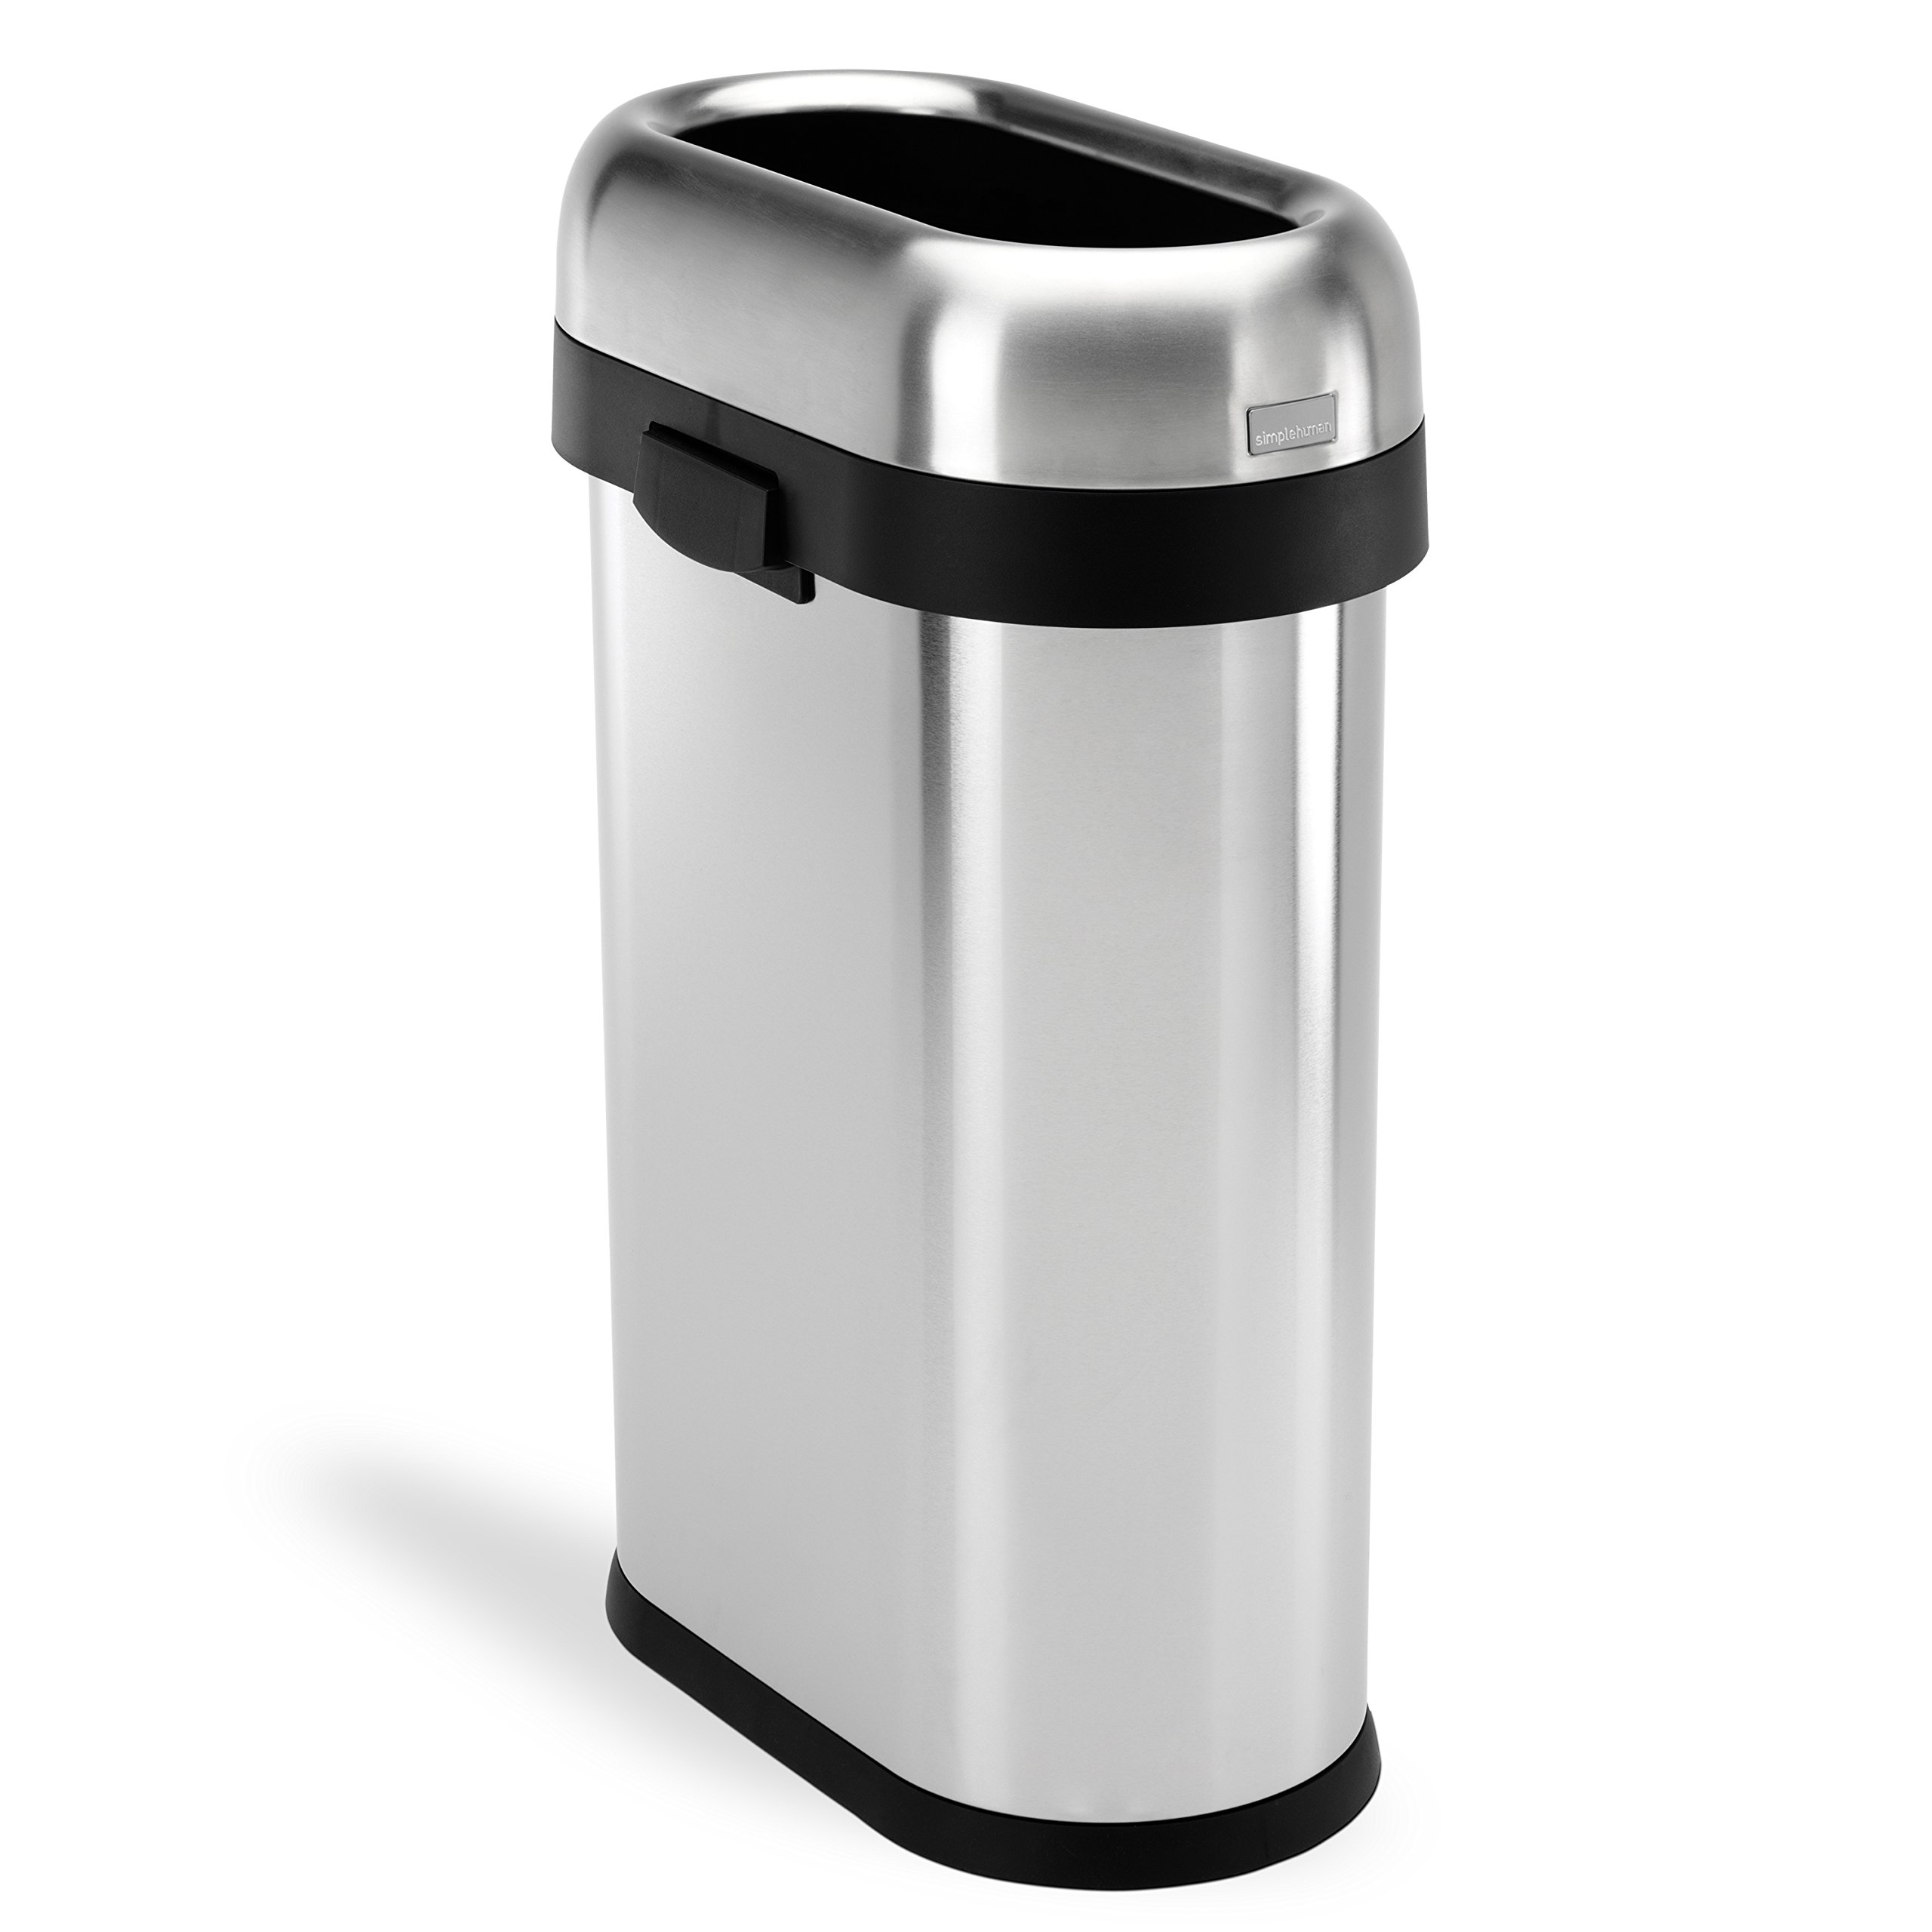 simplehuman Slim Open Top Trash Can, Commercial Grade, Heavy Gauge Stainless Steel, 50 L / 13 Gal by simplehuman